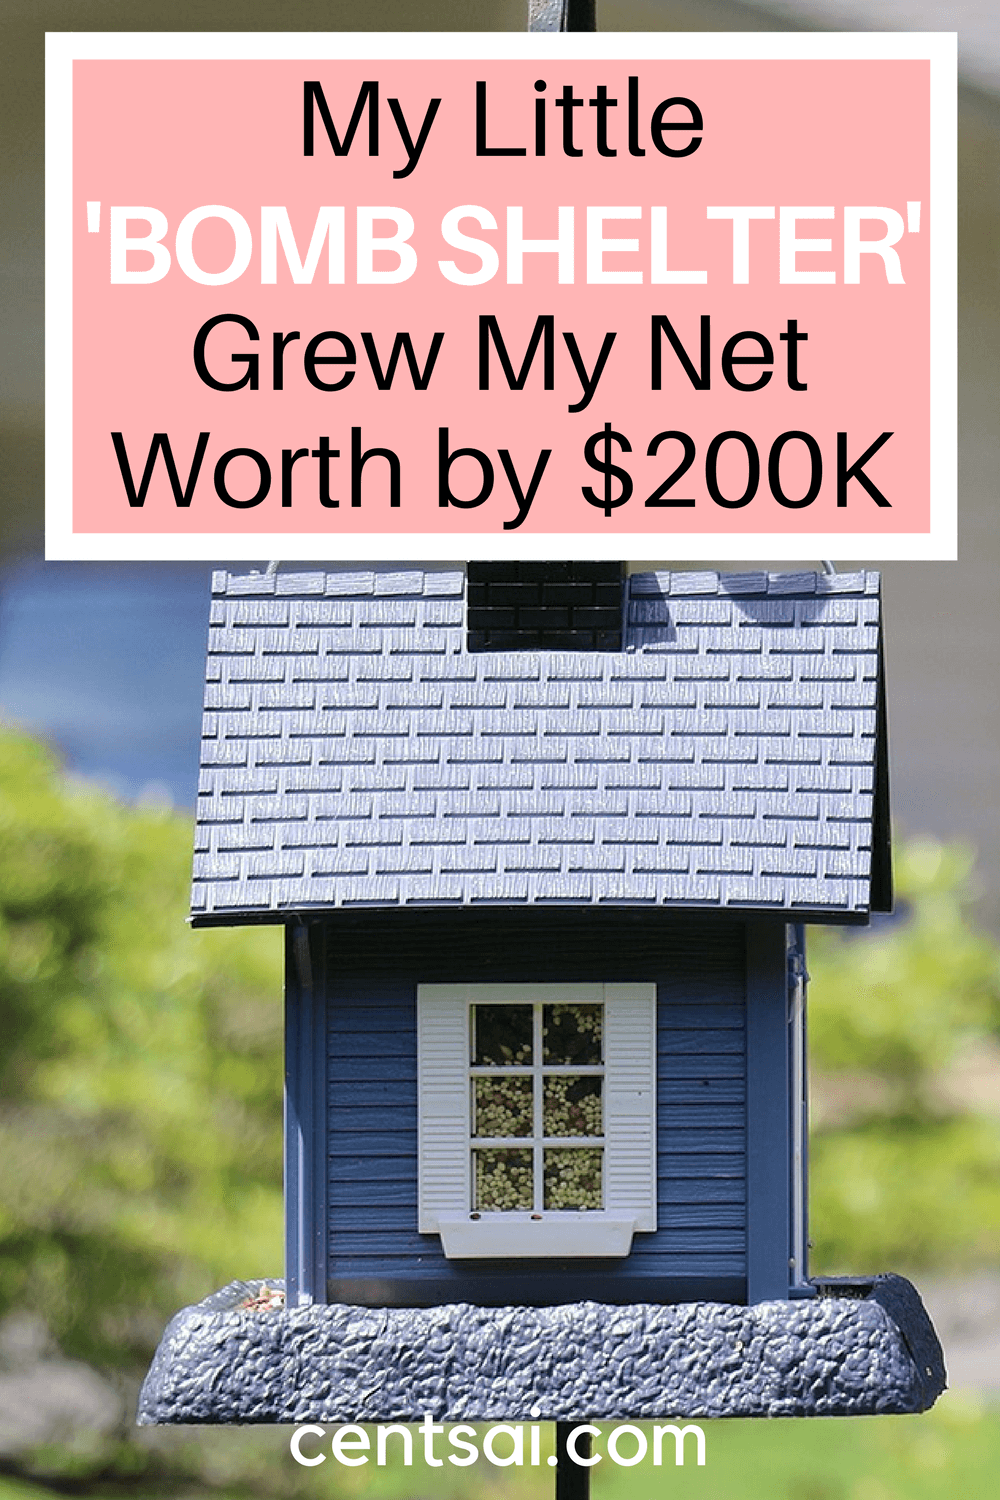 My Little 'Bomb Shelter' Grew My Net Worth by $200K. Finding reasonably priced real estate whose value is bound to appreciate in the long run can do wonders for your net worth.